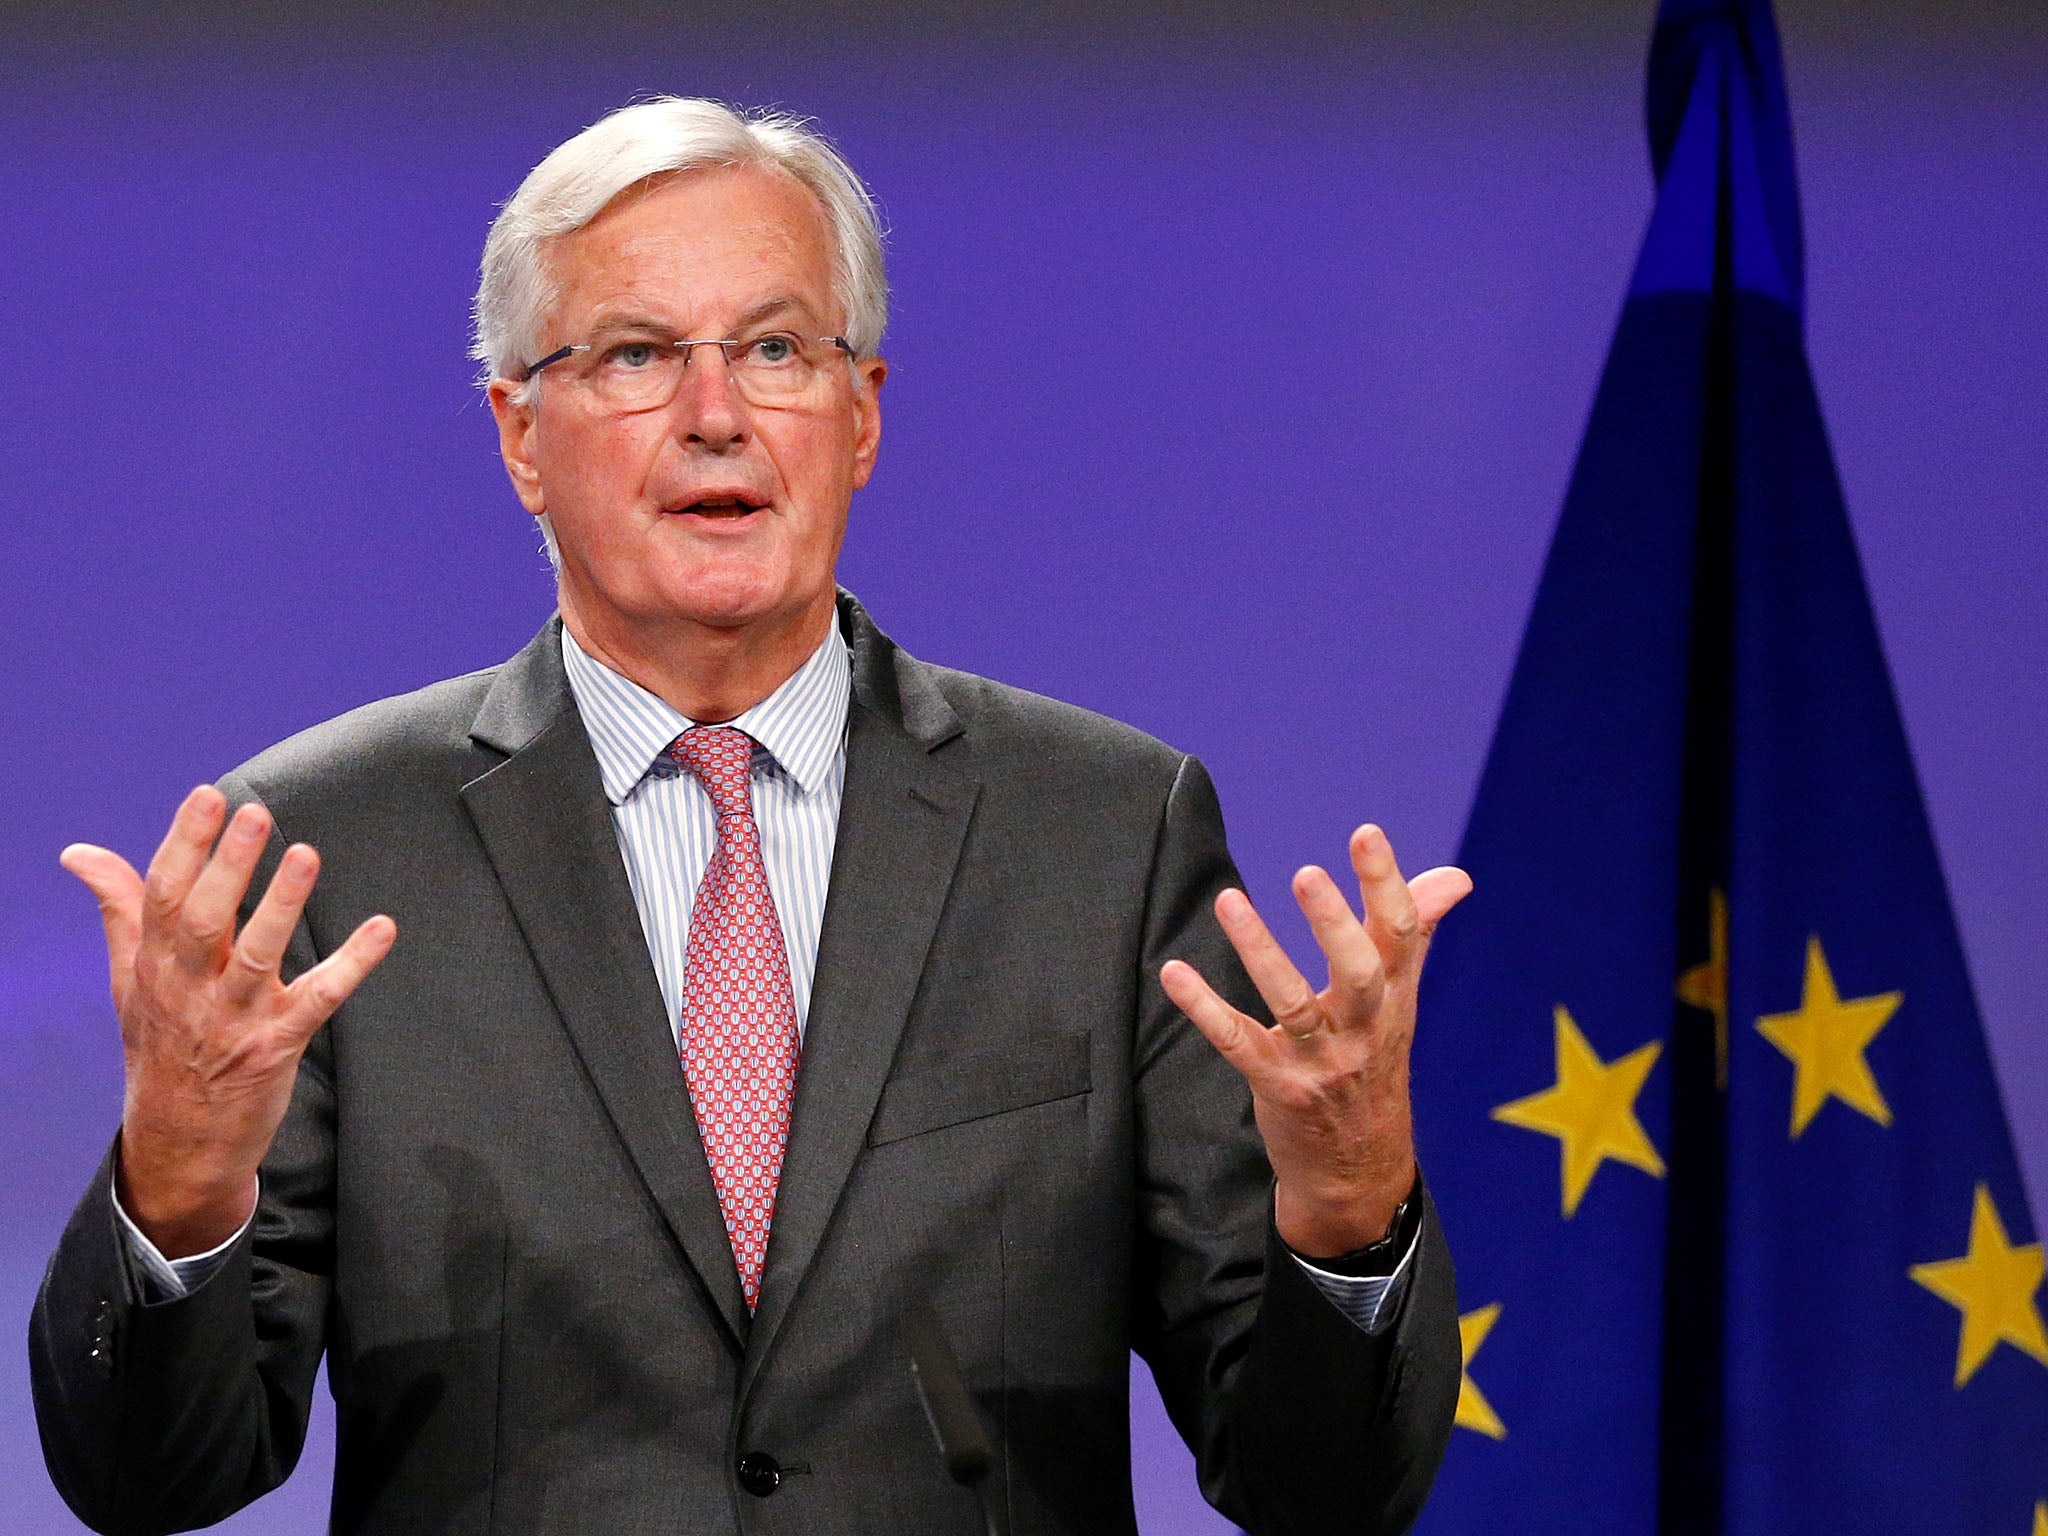 Brexit: EU's top negotiator says Britain failed to stand with European allies when it voted to leave